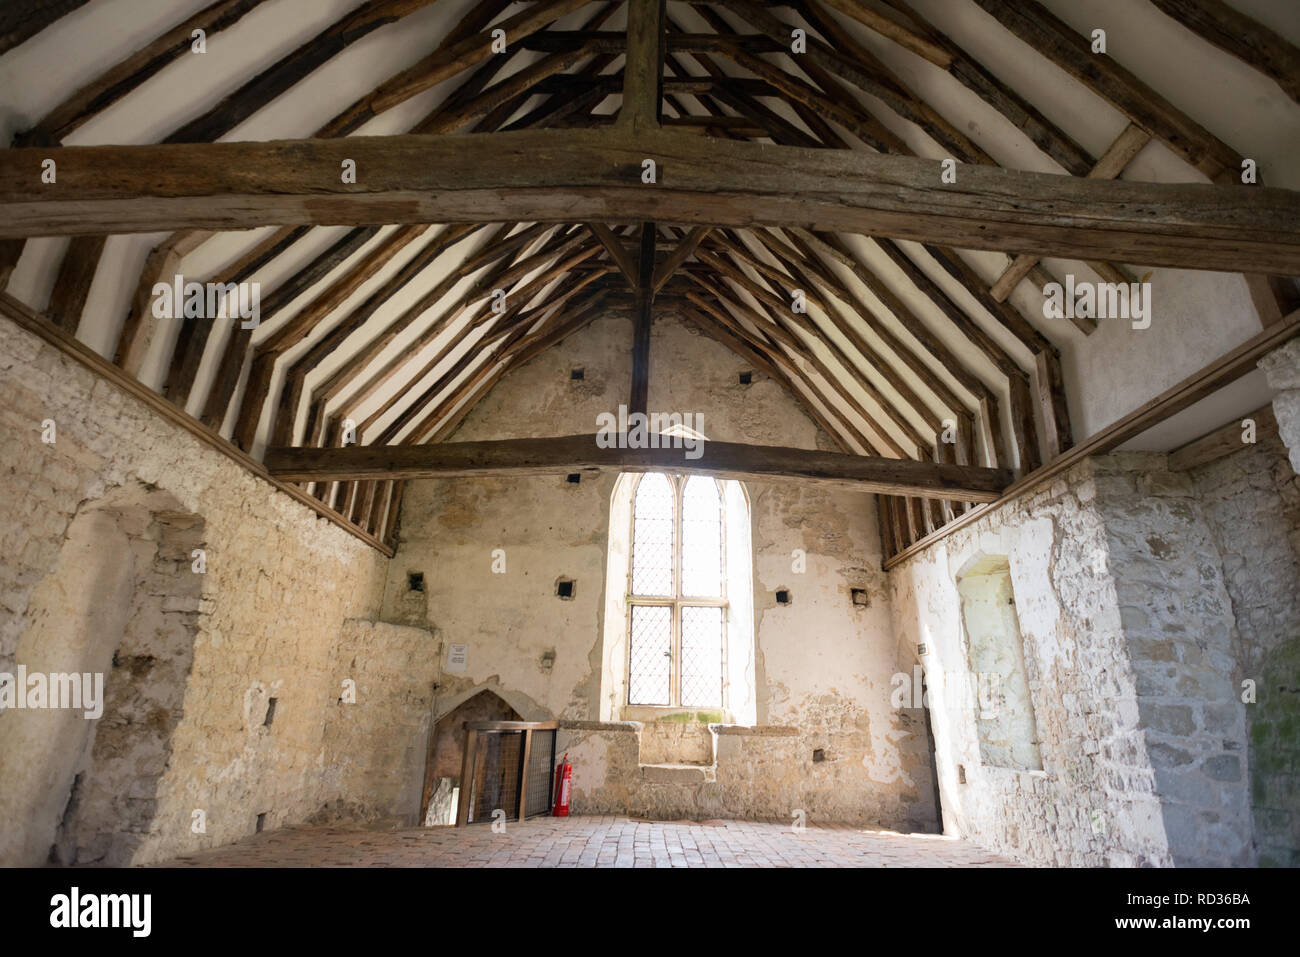 Old Soar Manor, near Sevenoaks, Kent - Stock Image